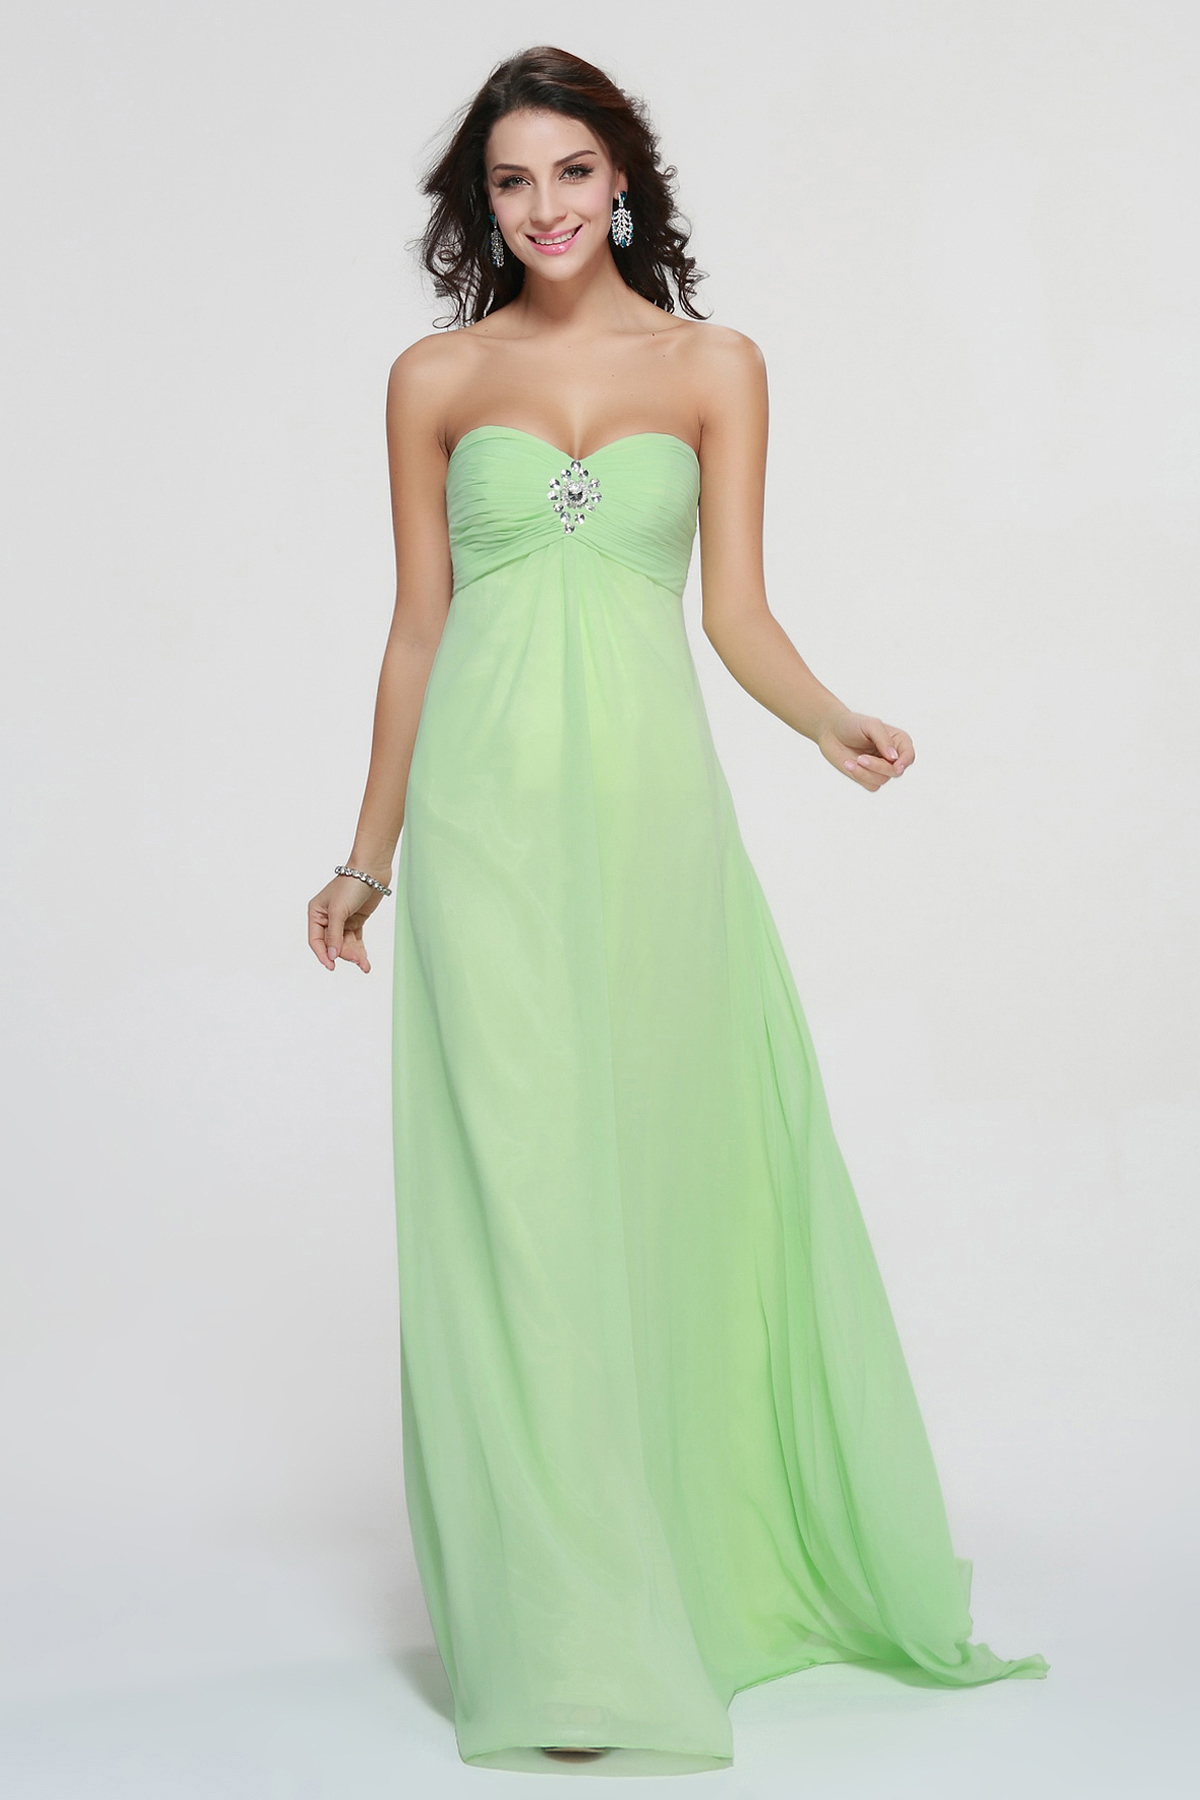 Simple Strapless Empire Long Chiffon Junior Prom Dress Cheap